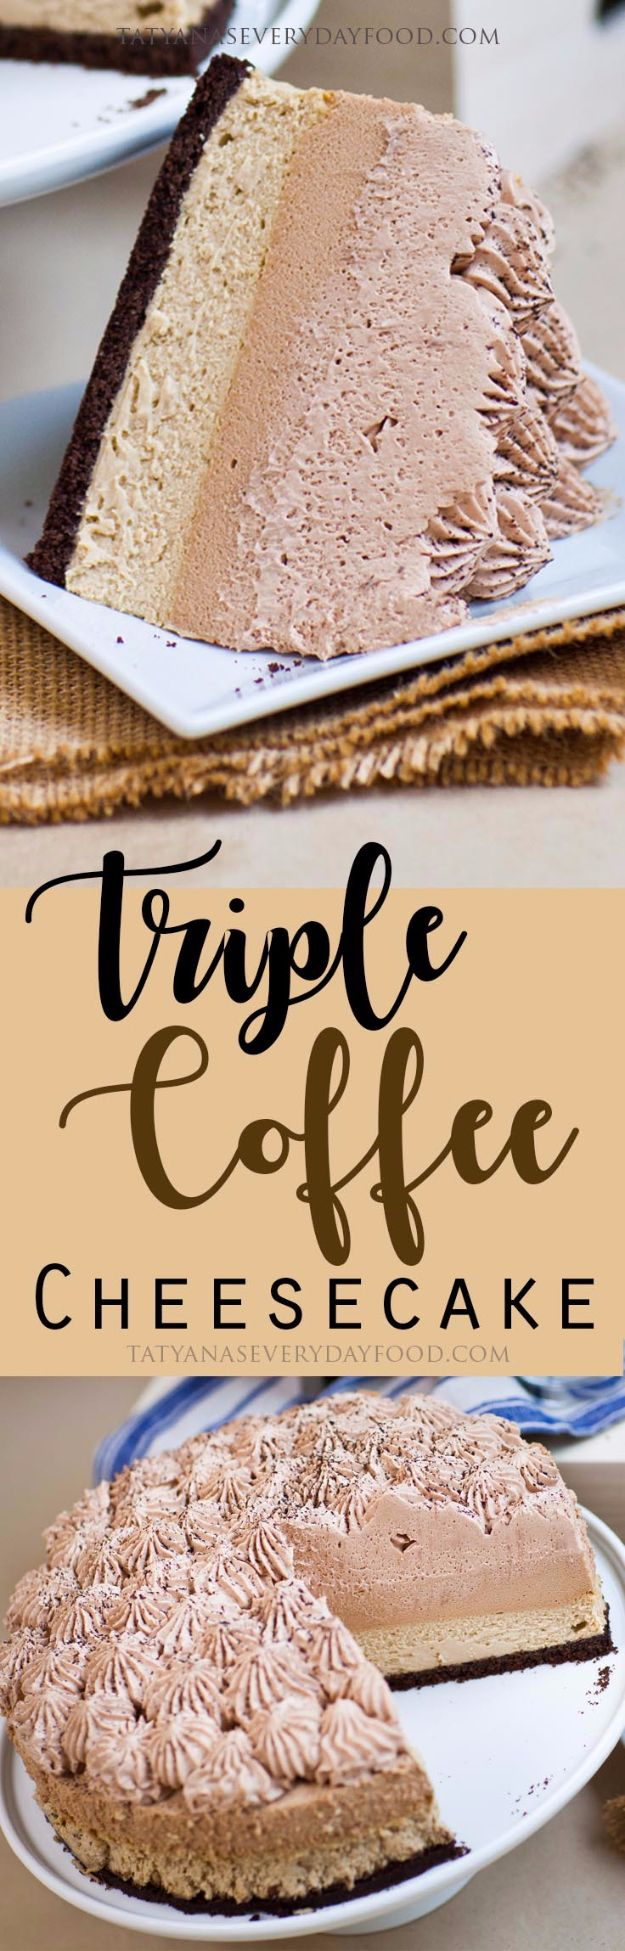 Best Cheesecake Recipes - Triple Coffee Cheesecake - Easy and Quick Recipe Ideas for Cheesecakes and Desserts - Chocolate, Simple Plain Classic, New York, Mini, Oreo, Lemon, Raspberry and Quick No Bake - Step by Step Instructions and Tutorials for Yummy Dessert